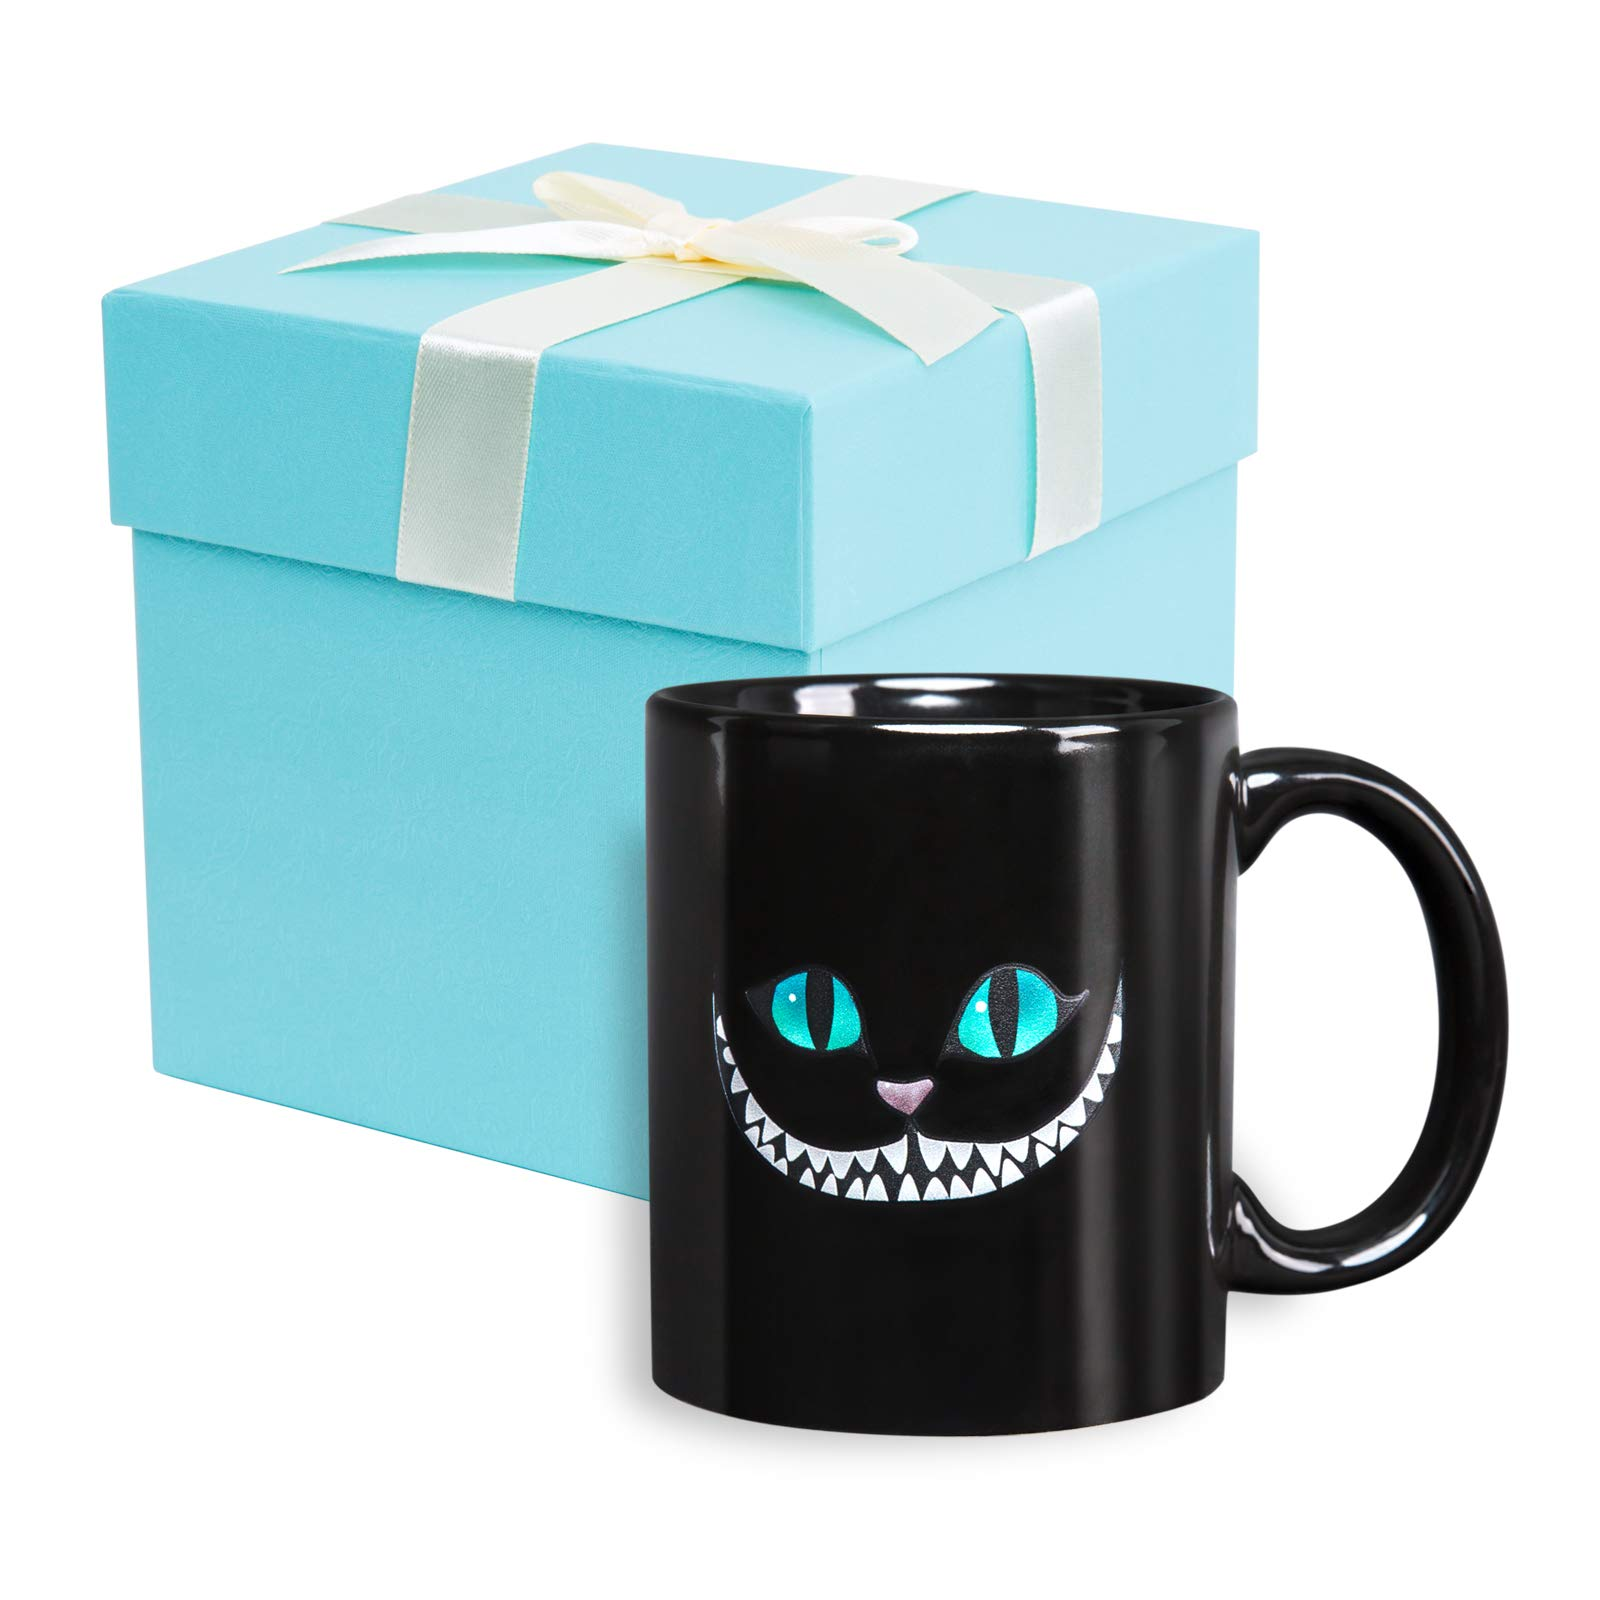 XANX SMON Amazon.com Cheshire Cat Mug Black 11OZ Funny Coffee Mug Animal Cup Cute Cup Porcelain Cup cat Mug Anime Mug